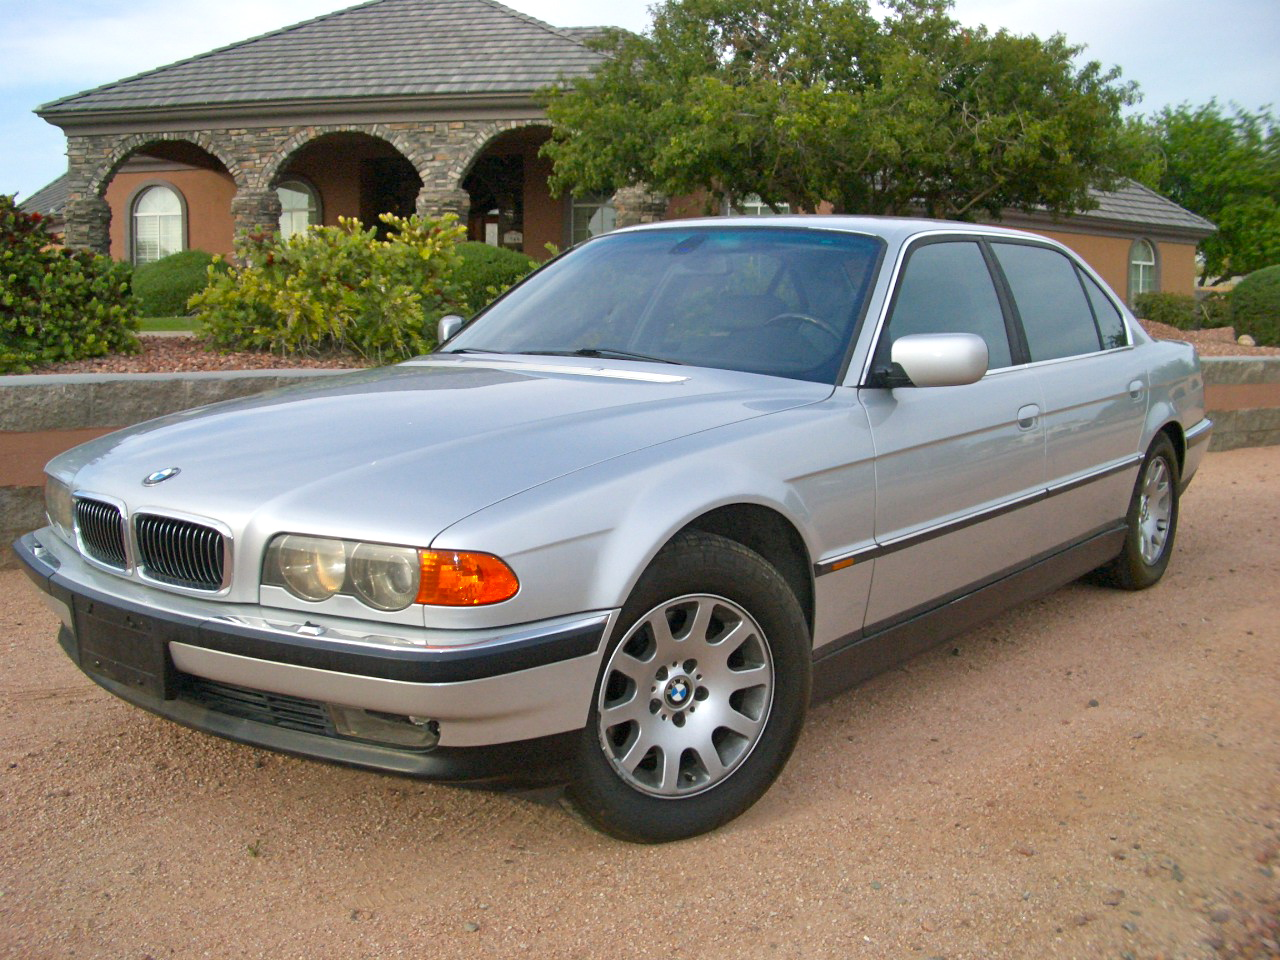 2000 BMW 740iL